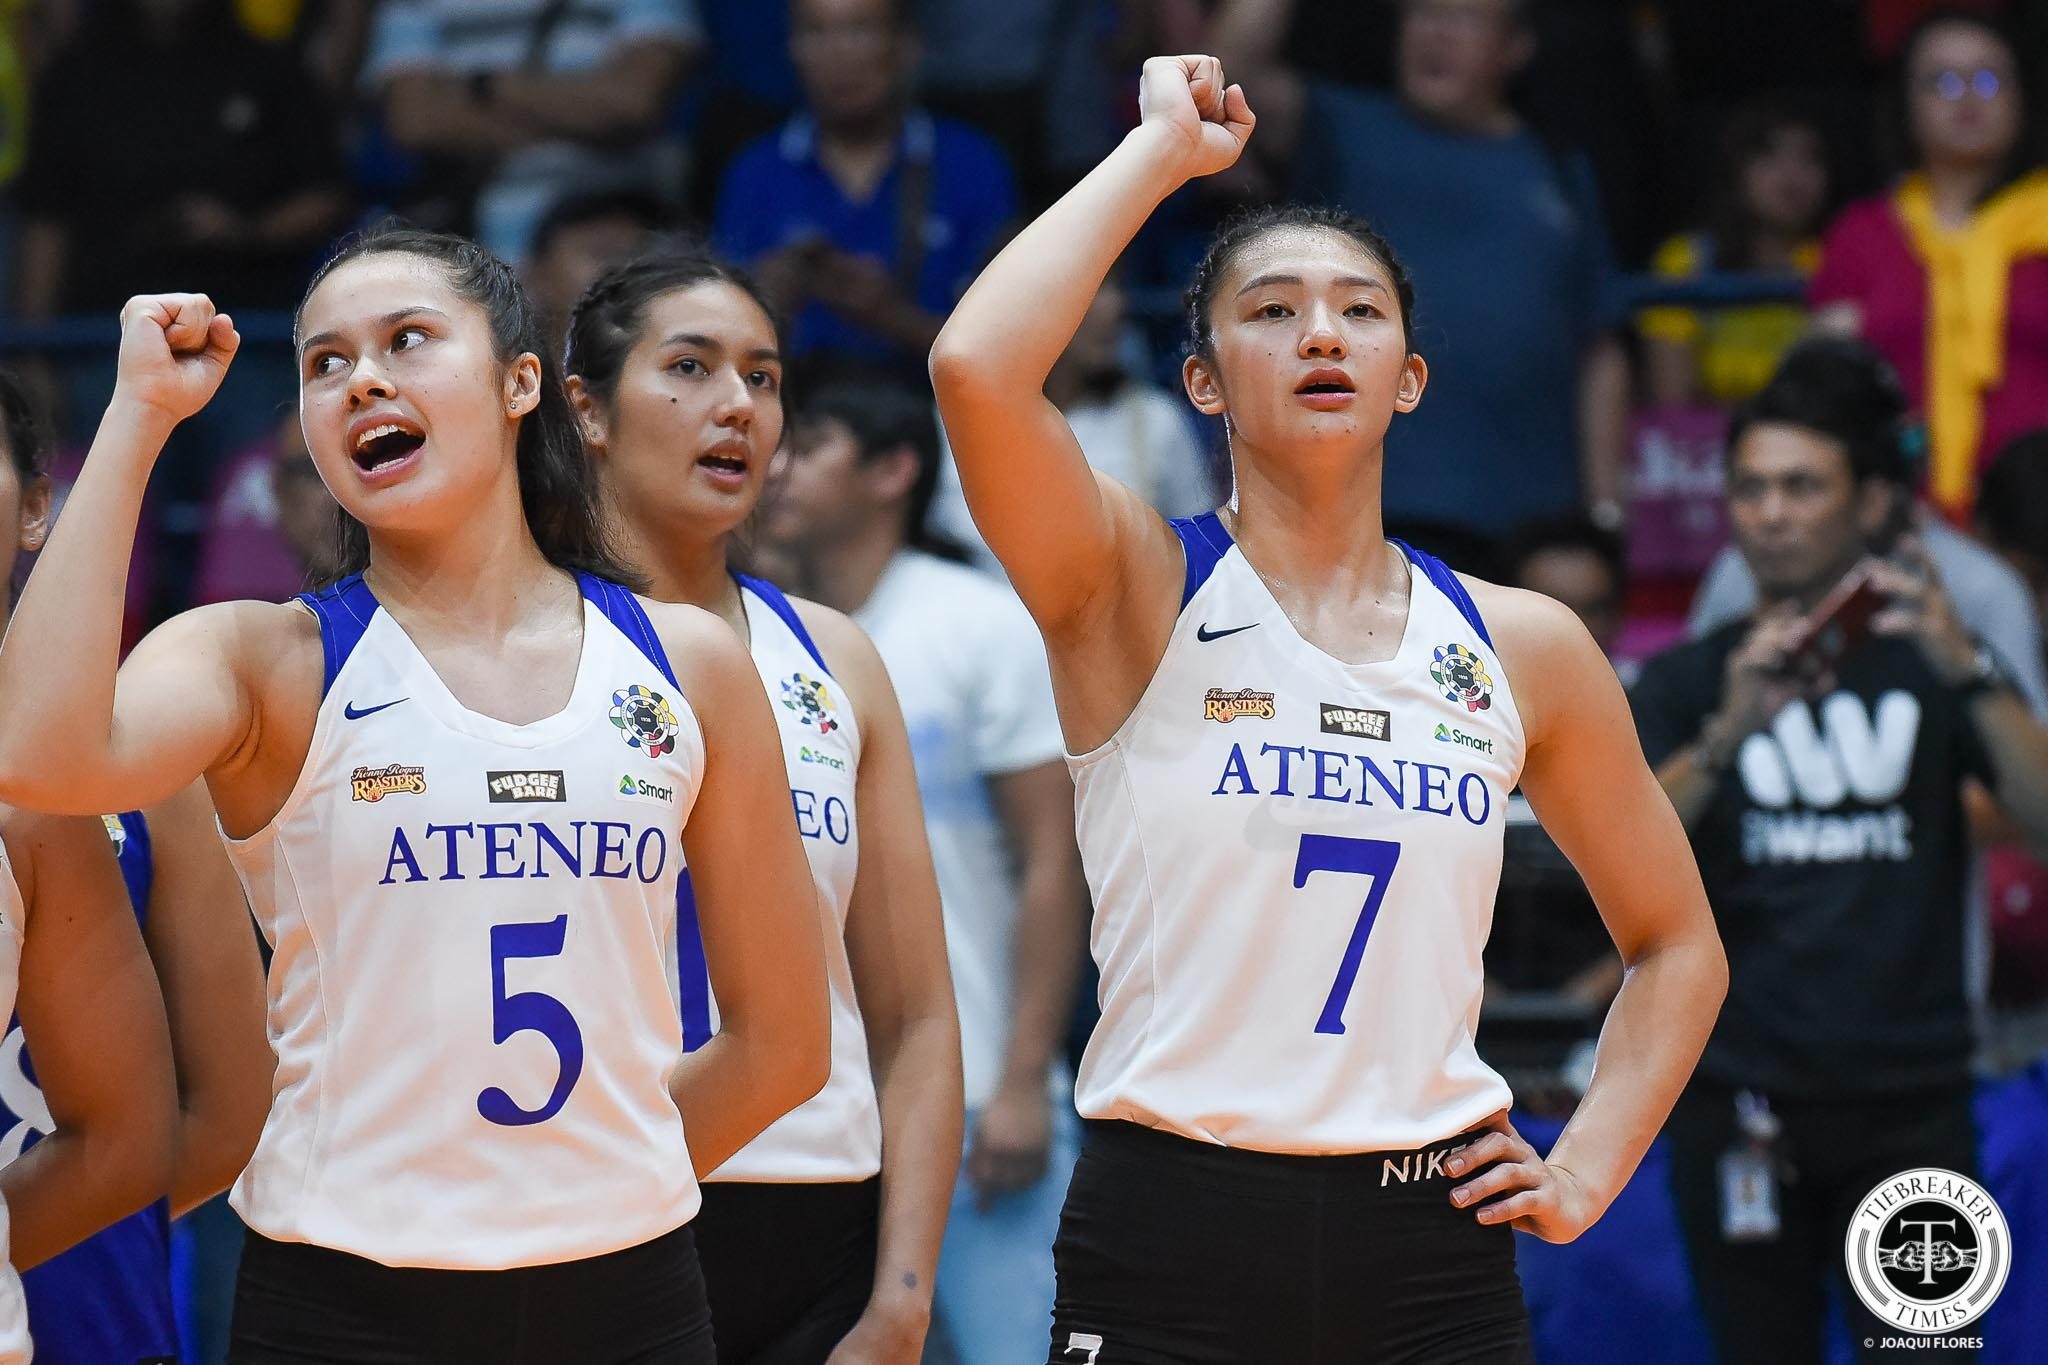 Tiebreaker Times Bea De Leon, Maddie Madayag refused to think they were playing final game ADMU News UAAP Volleyball  UAAP Season 81 Women's Volleyball UAAP Season 81 Maddie Madayag Bea De Leon Ateneo Women's Volleyball